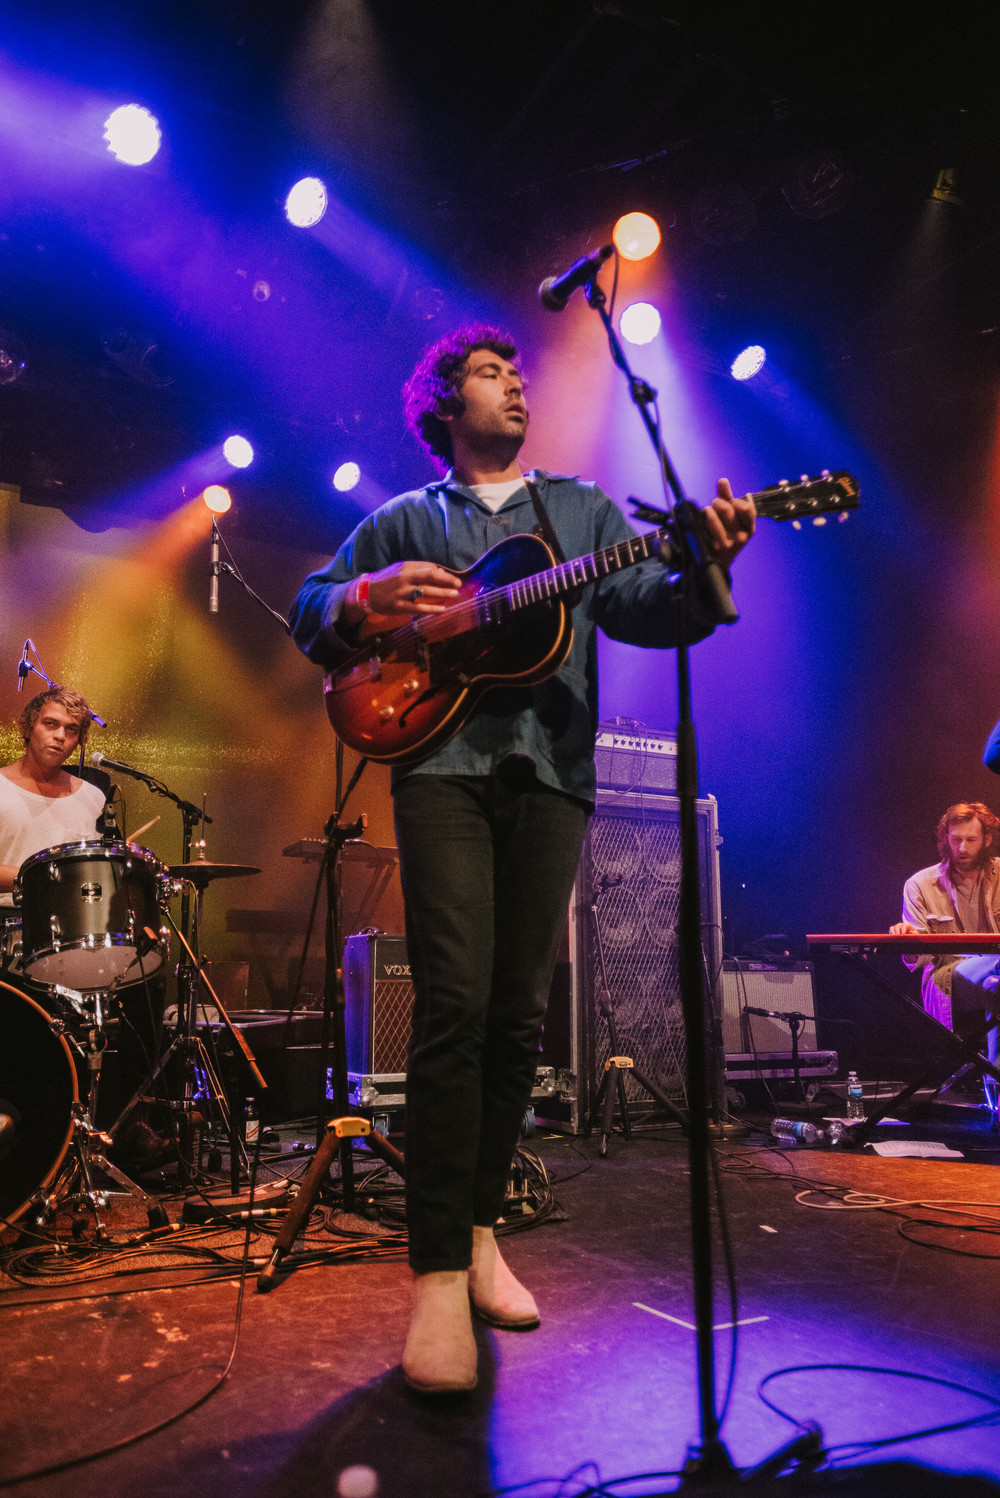 3_Allah-Las_Music_Commodore_Ballroom_Timothy_Nguyen_20160617 (12 of 15).jpg